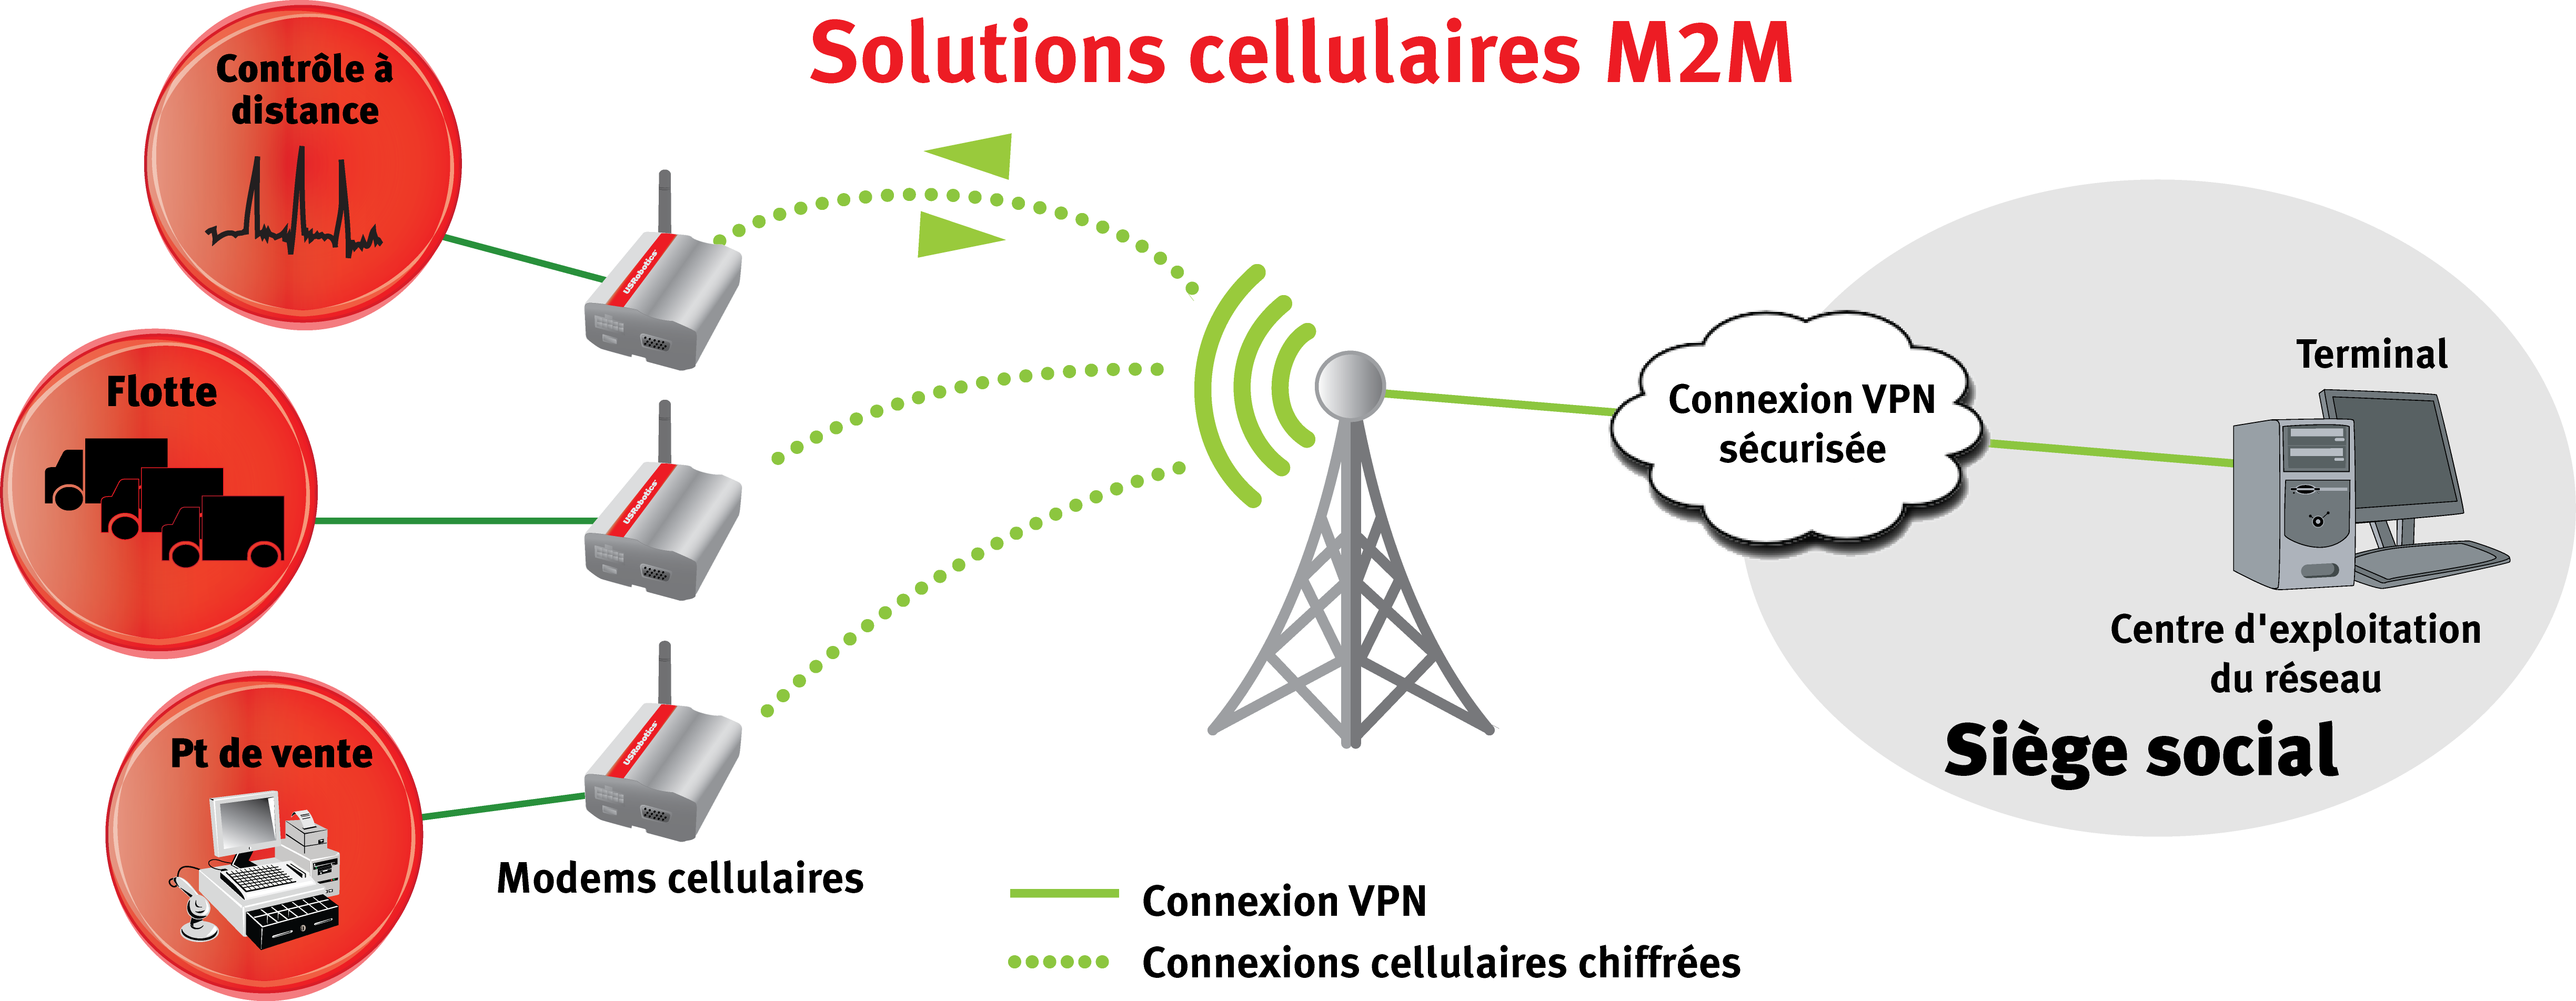 M2M Cellular solution with the USRobotics USR3500 Courier Modem